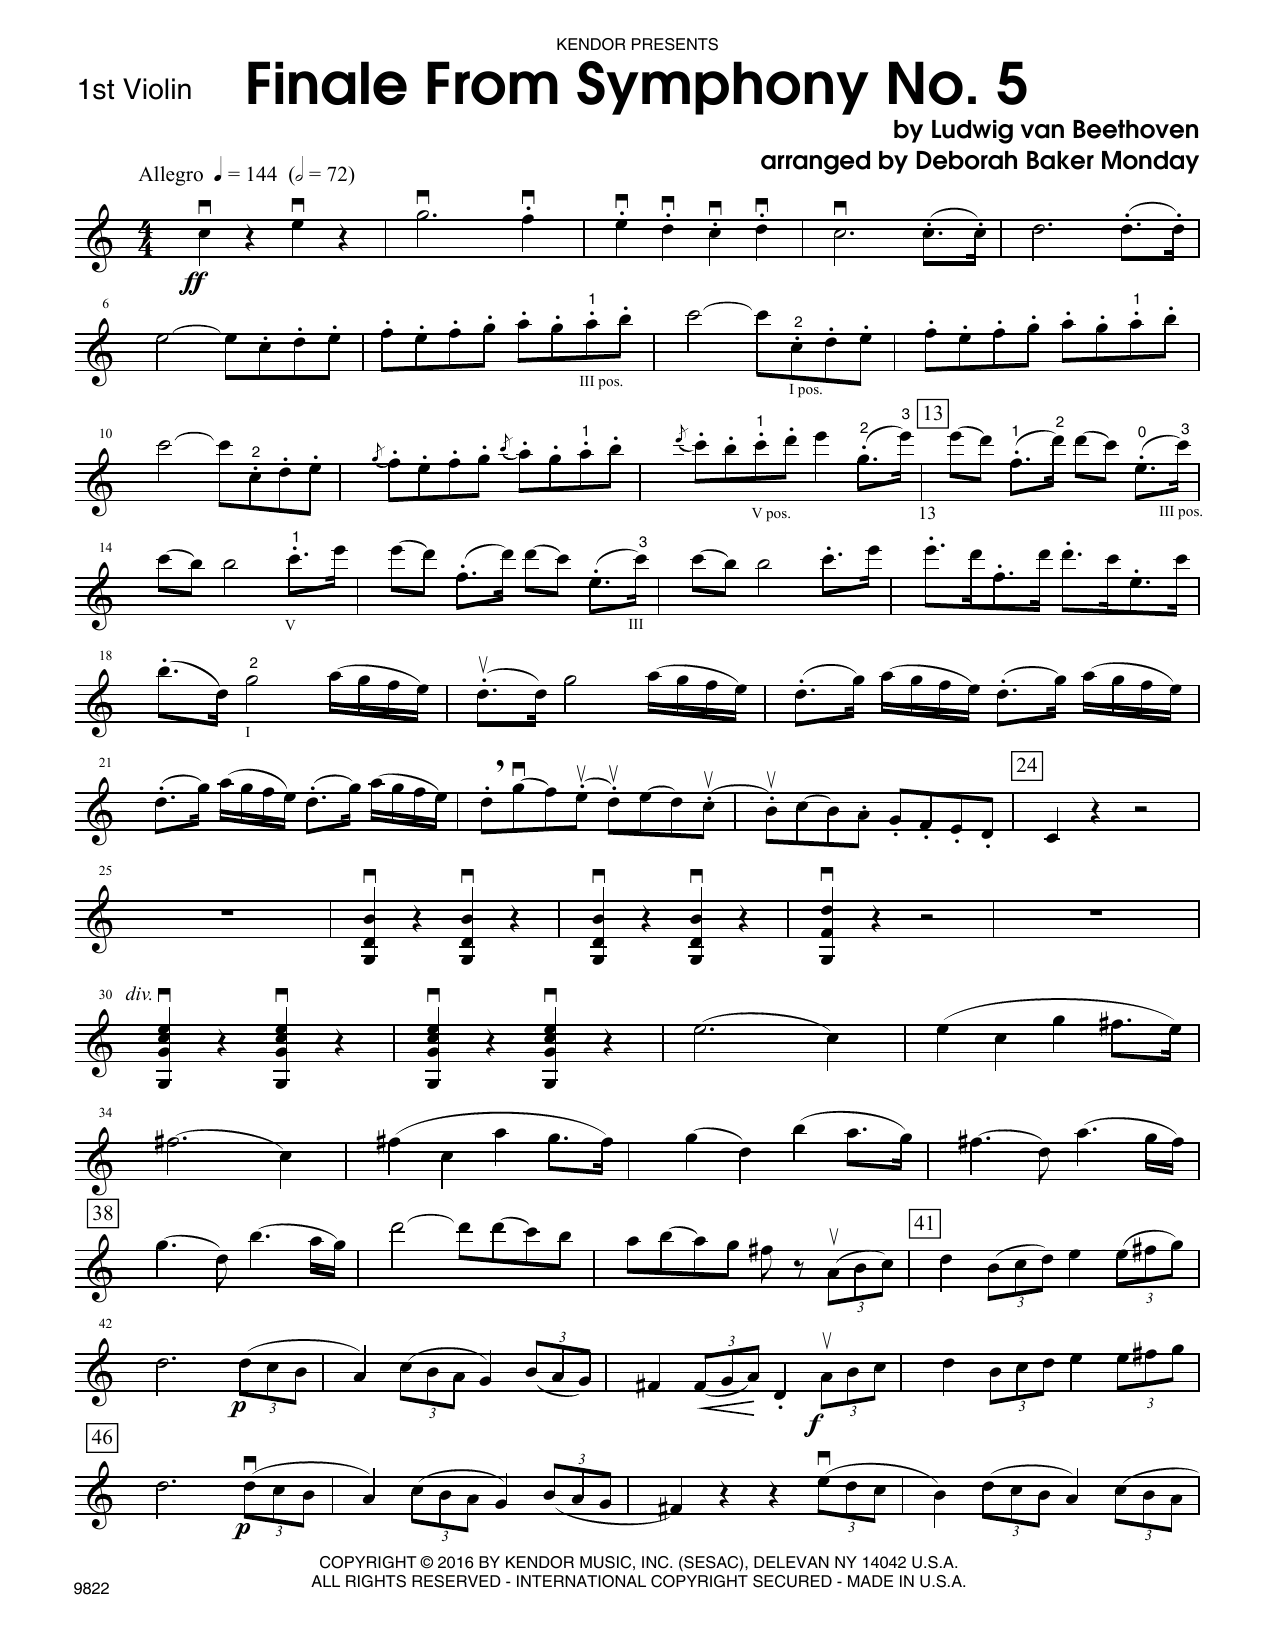 Finale from Symphony No. 5 - 1st Violin Sheet Music